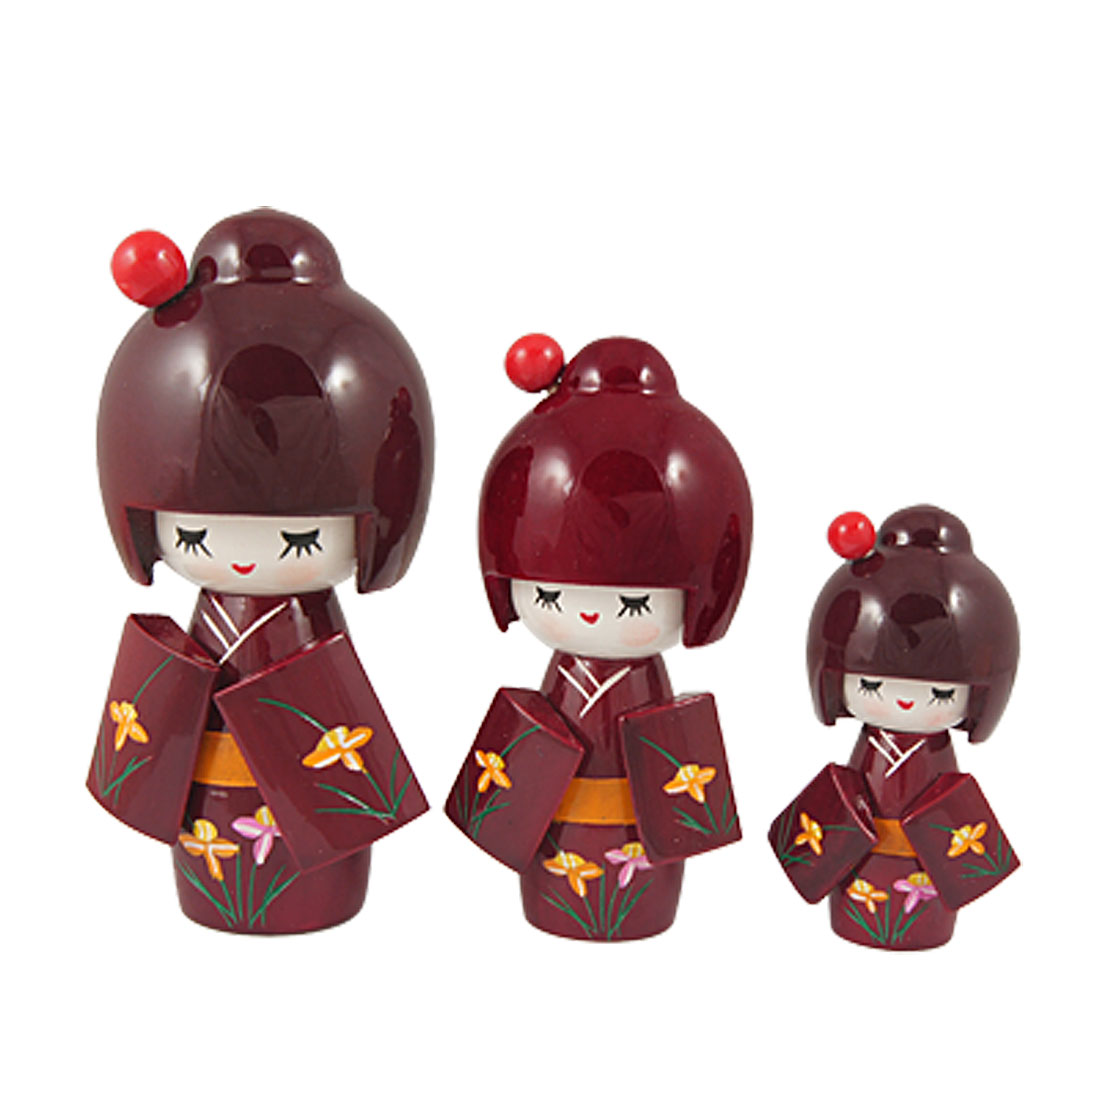 3 Pcs Maroon Hair Kimono Shyly Smiling Girl Kokeshi Doll Wooded Toy